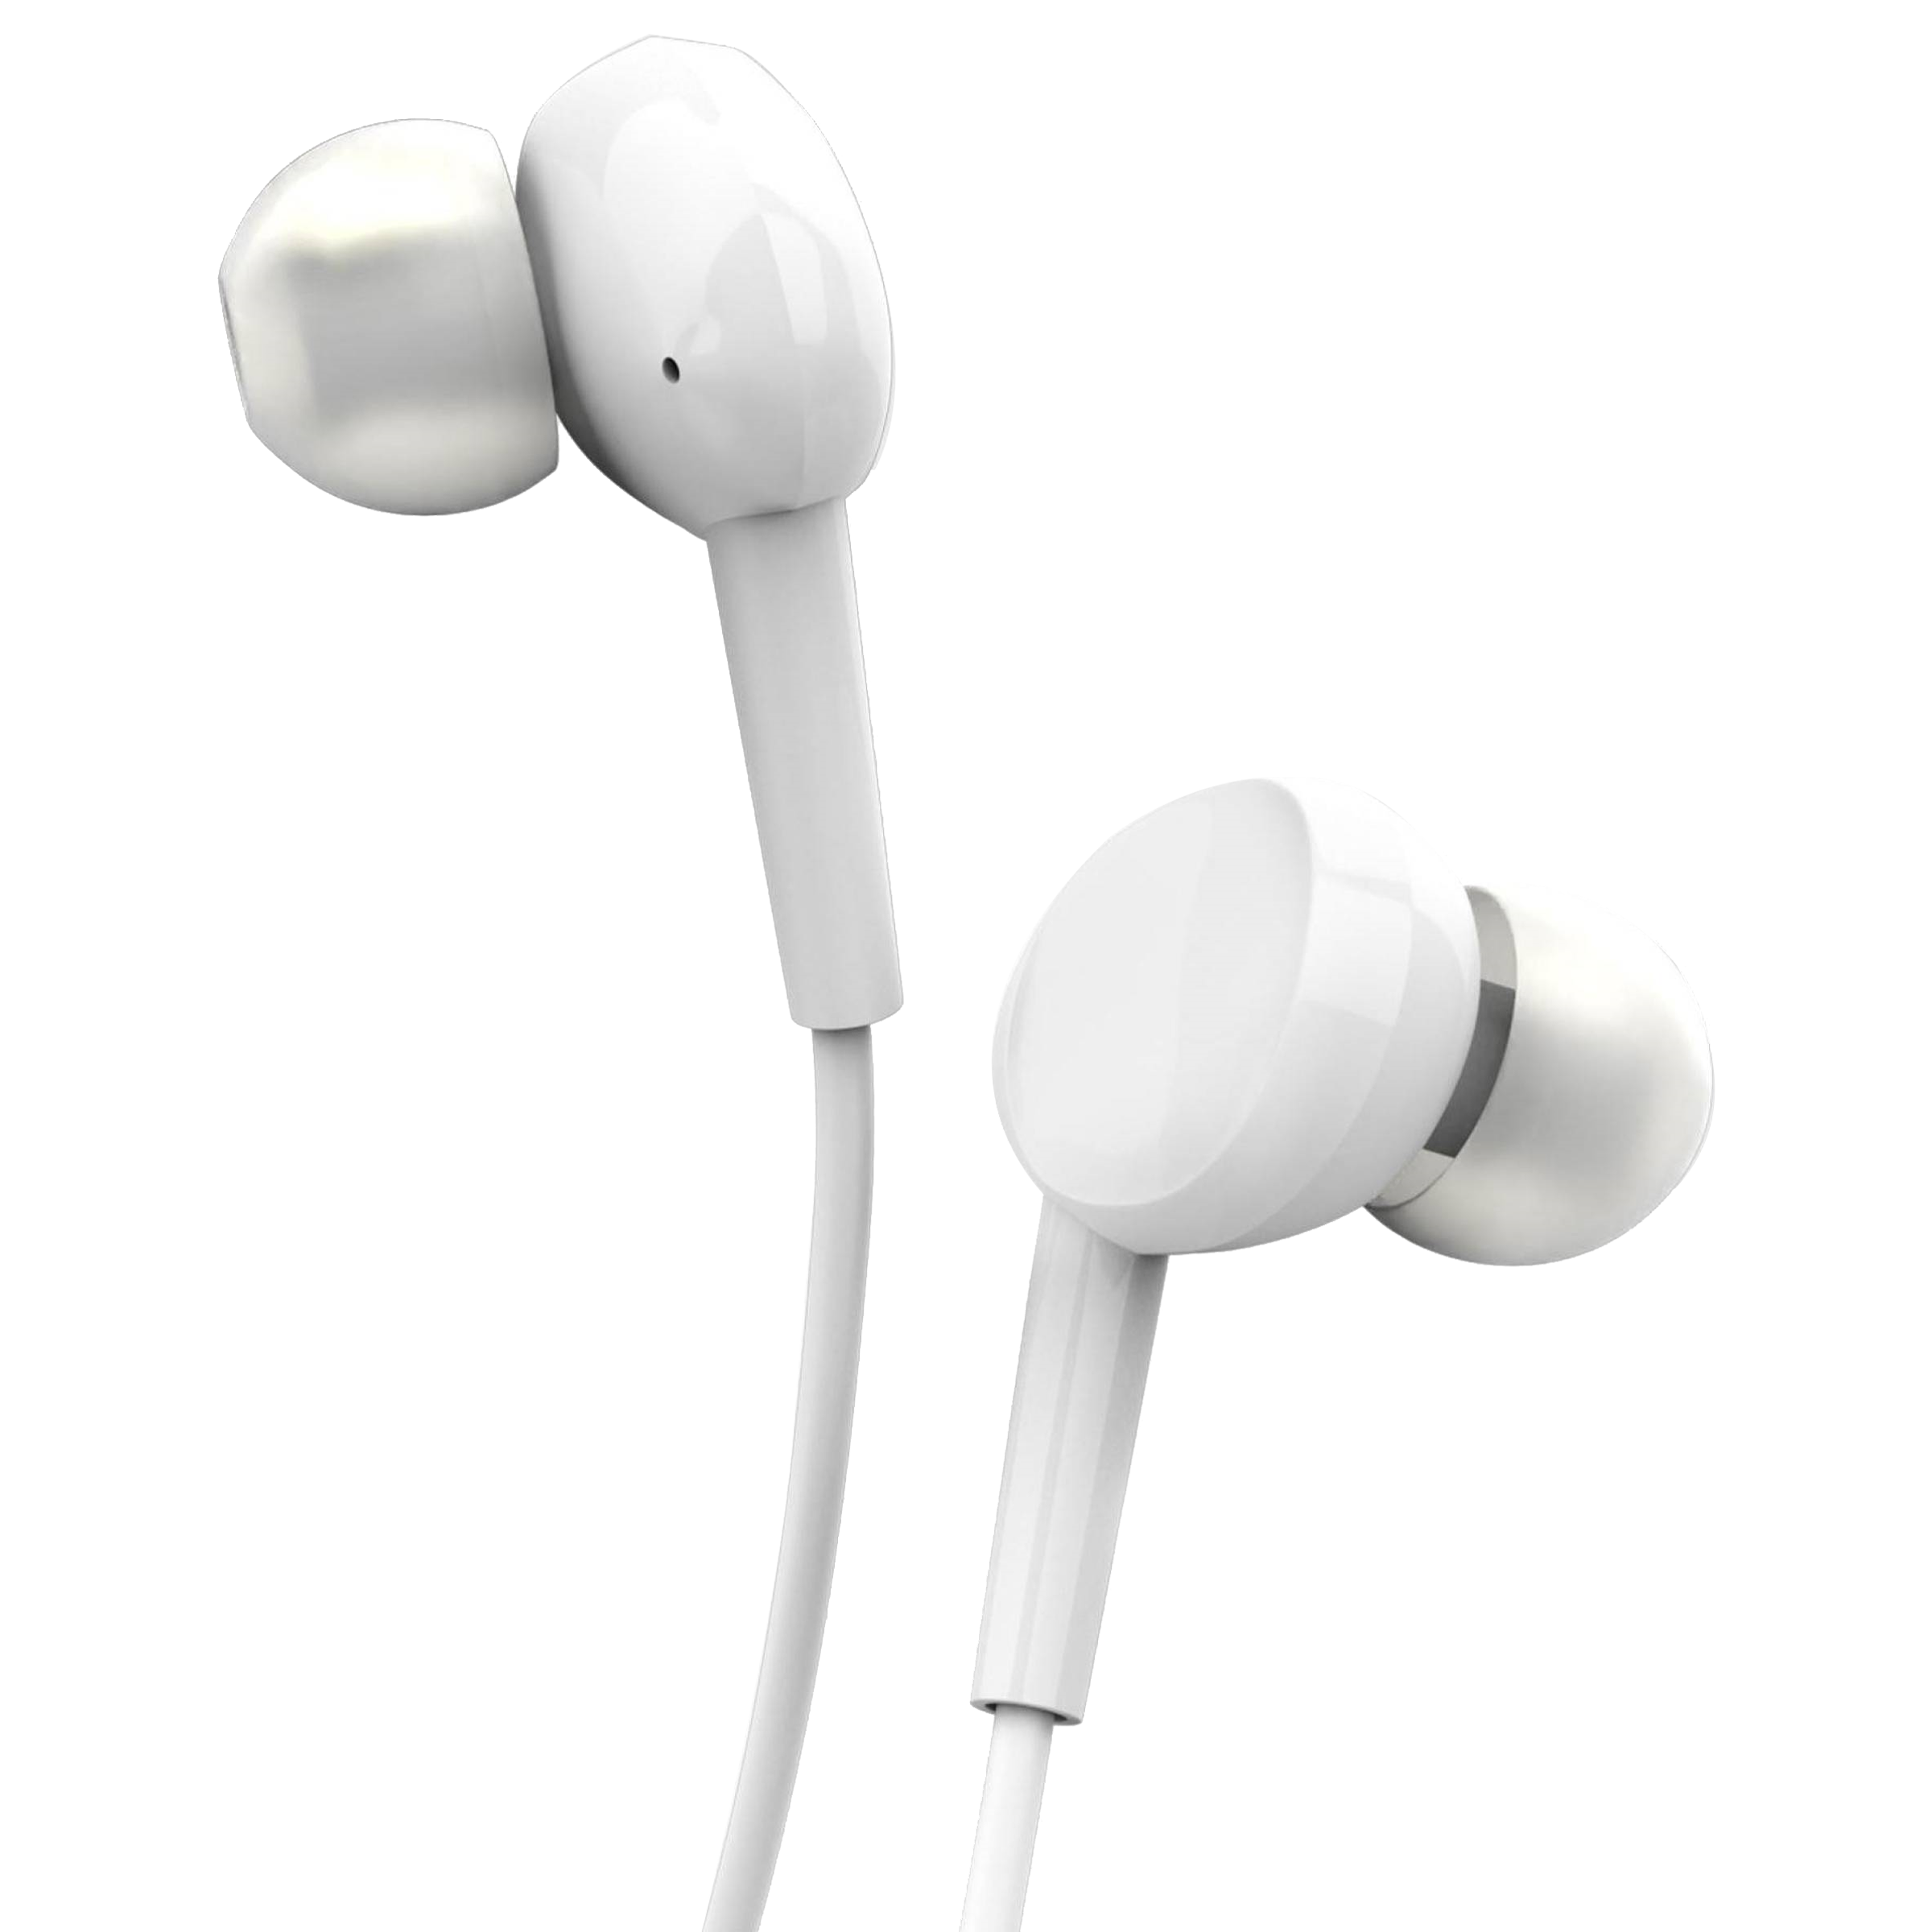 Gizmore GIZ In-Ear Wired Earphone with Mic (Hi-Fi Stereo Sound, ME314_WHT, White)_1